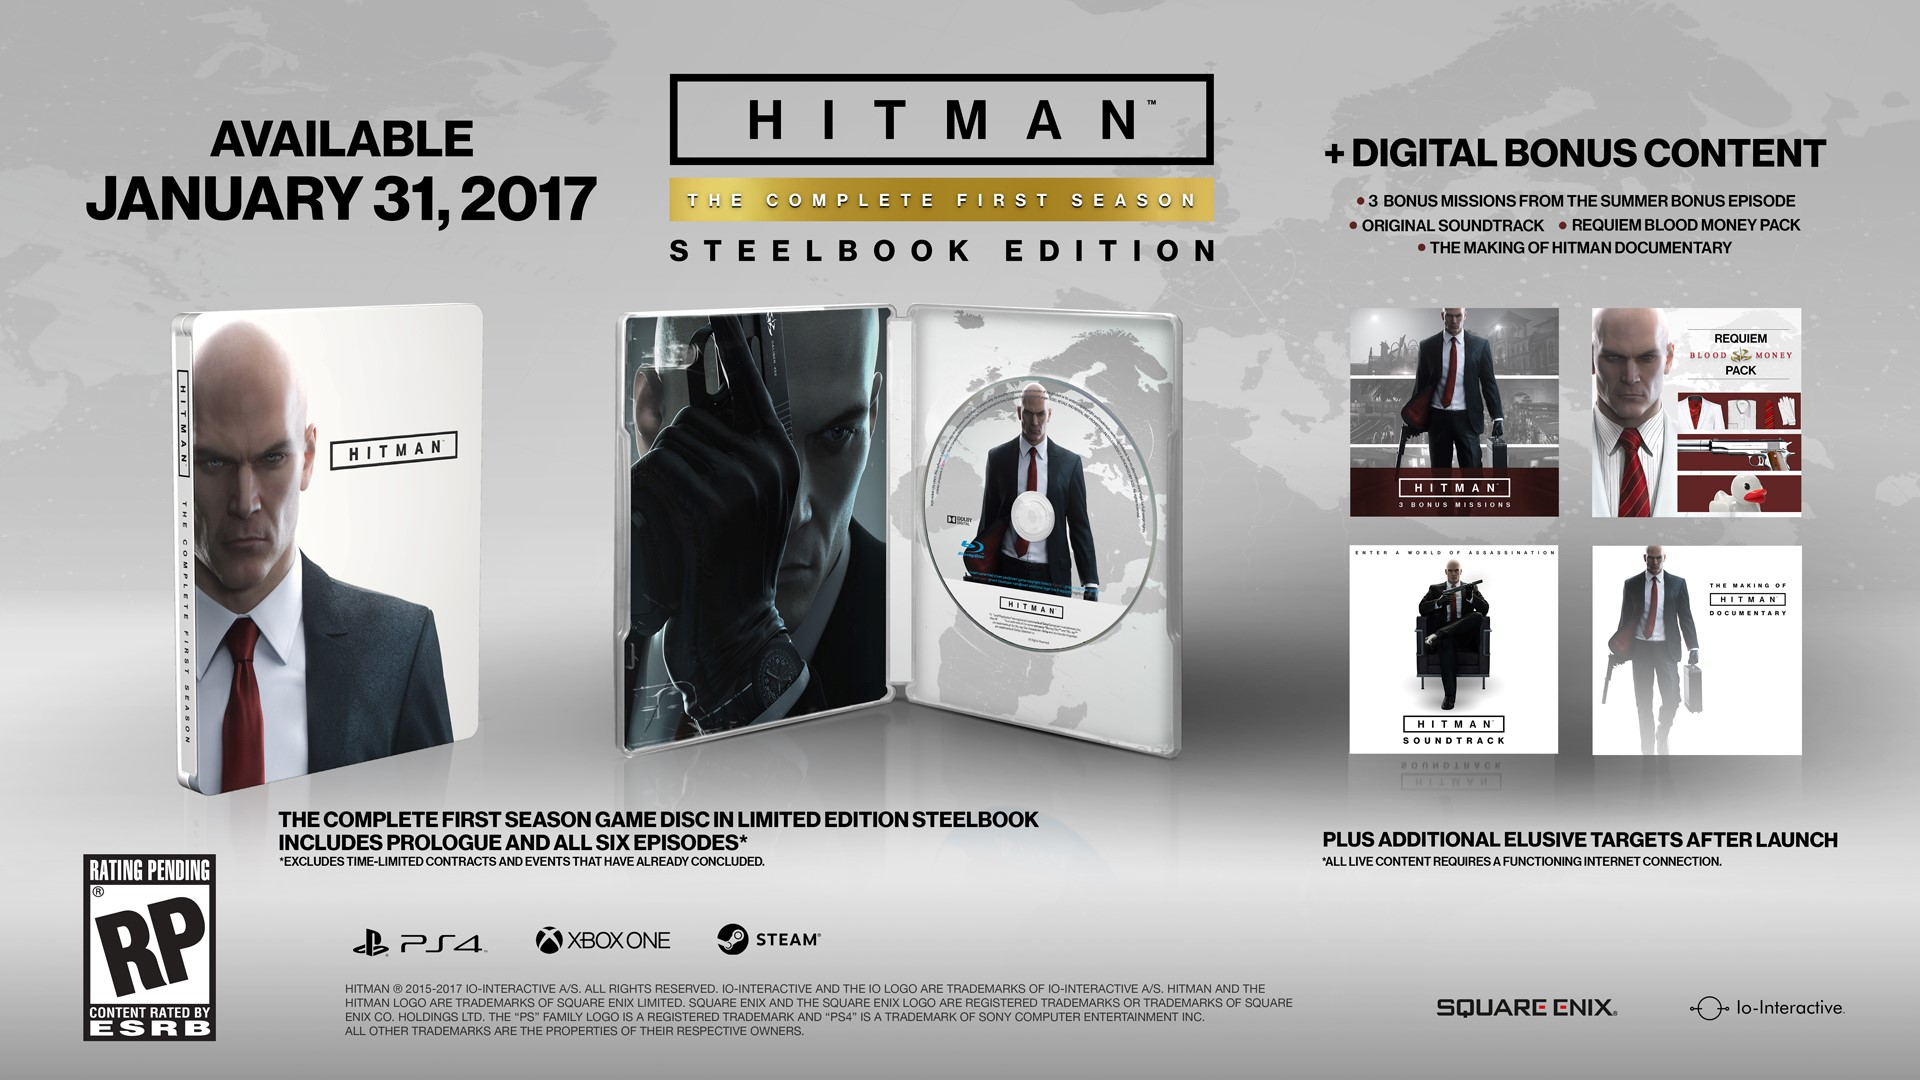 hitman-game-steelbook